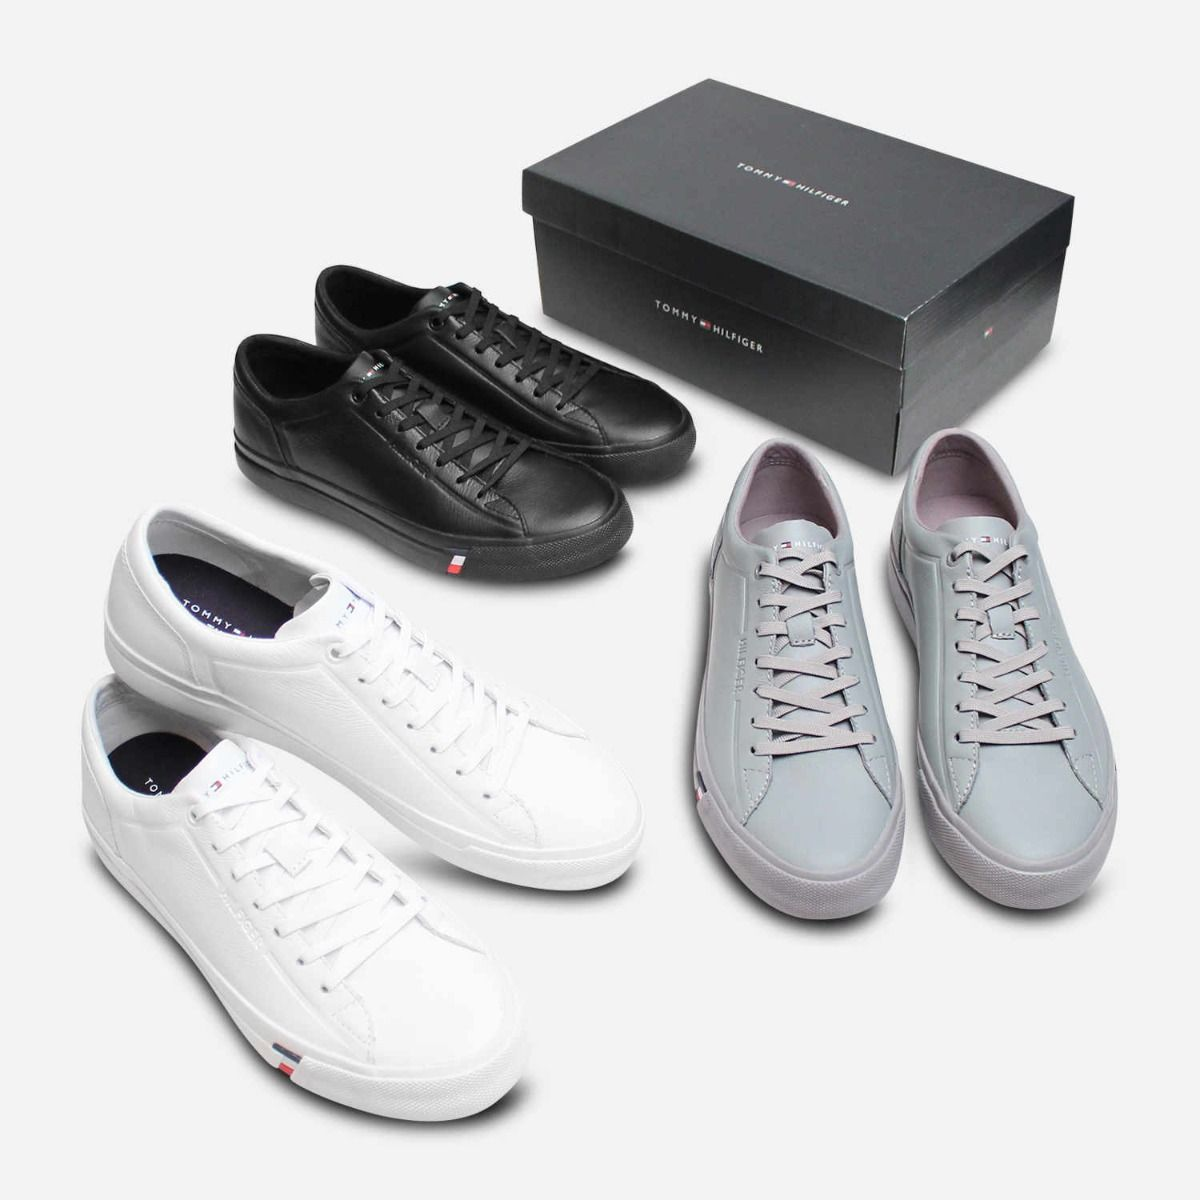 Premium White Leather Sneakers by Tommy